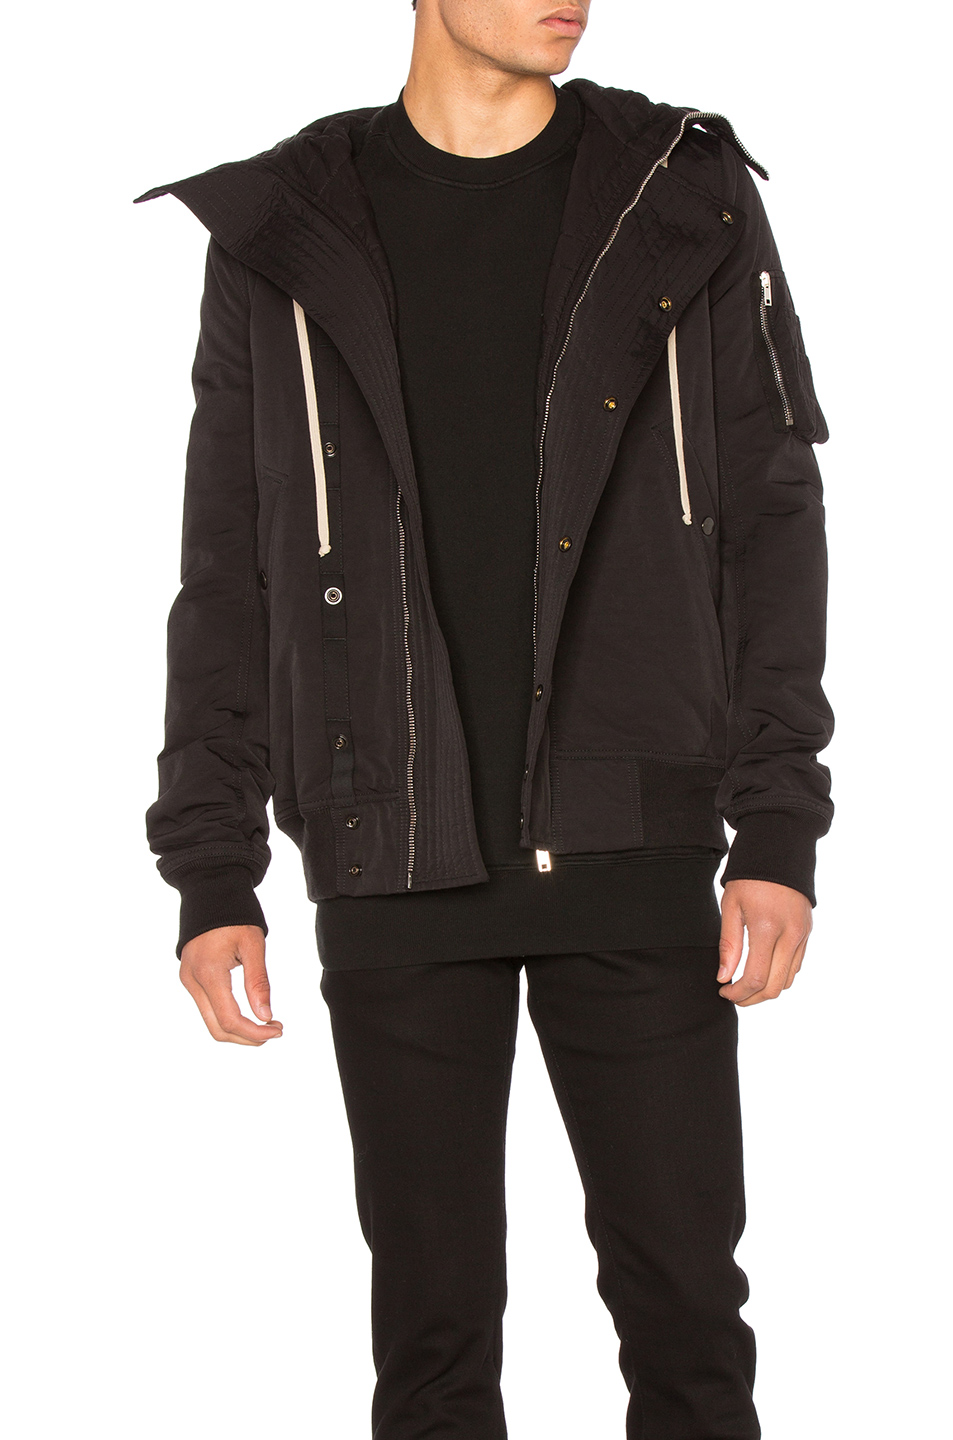 DRKSHDW by Rick Owens Short Hooded Bomber Jacket in Black